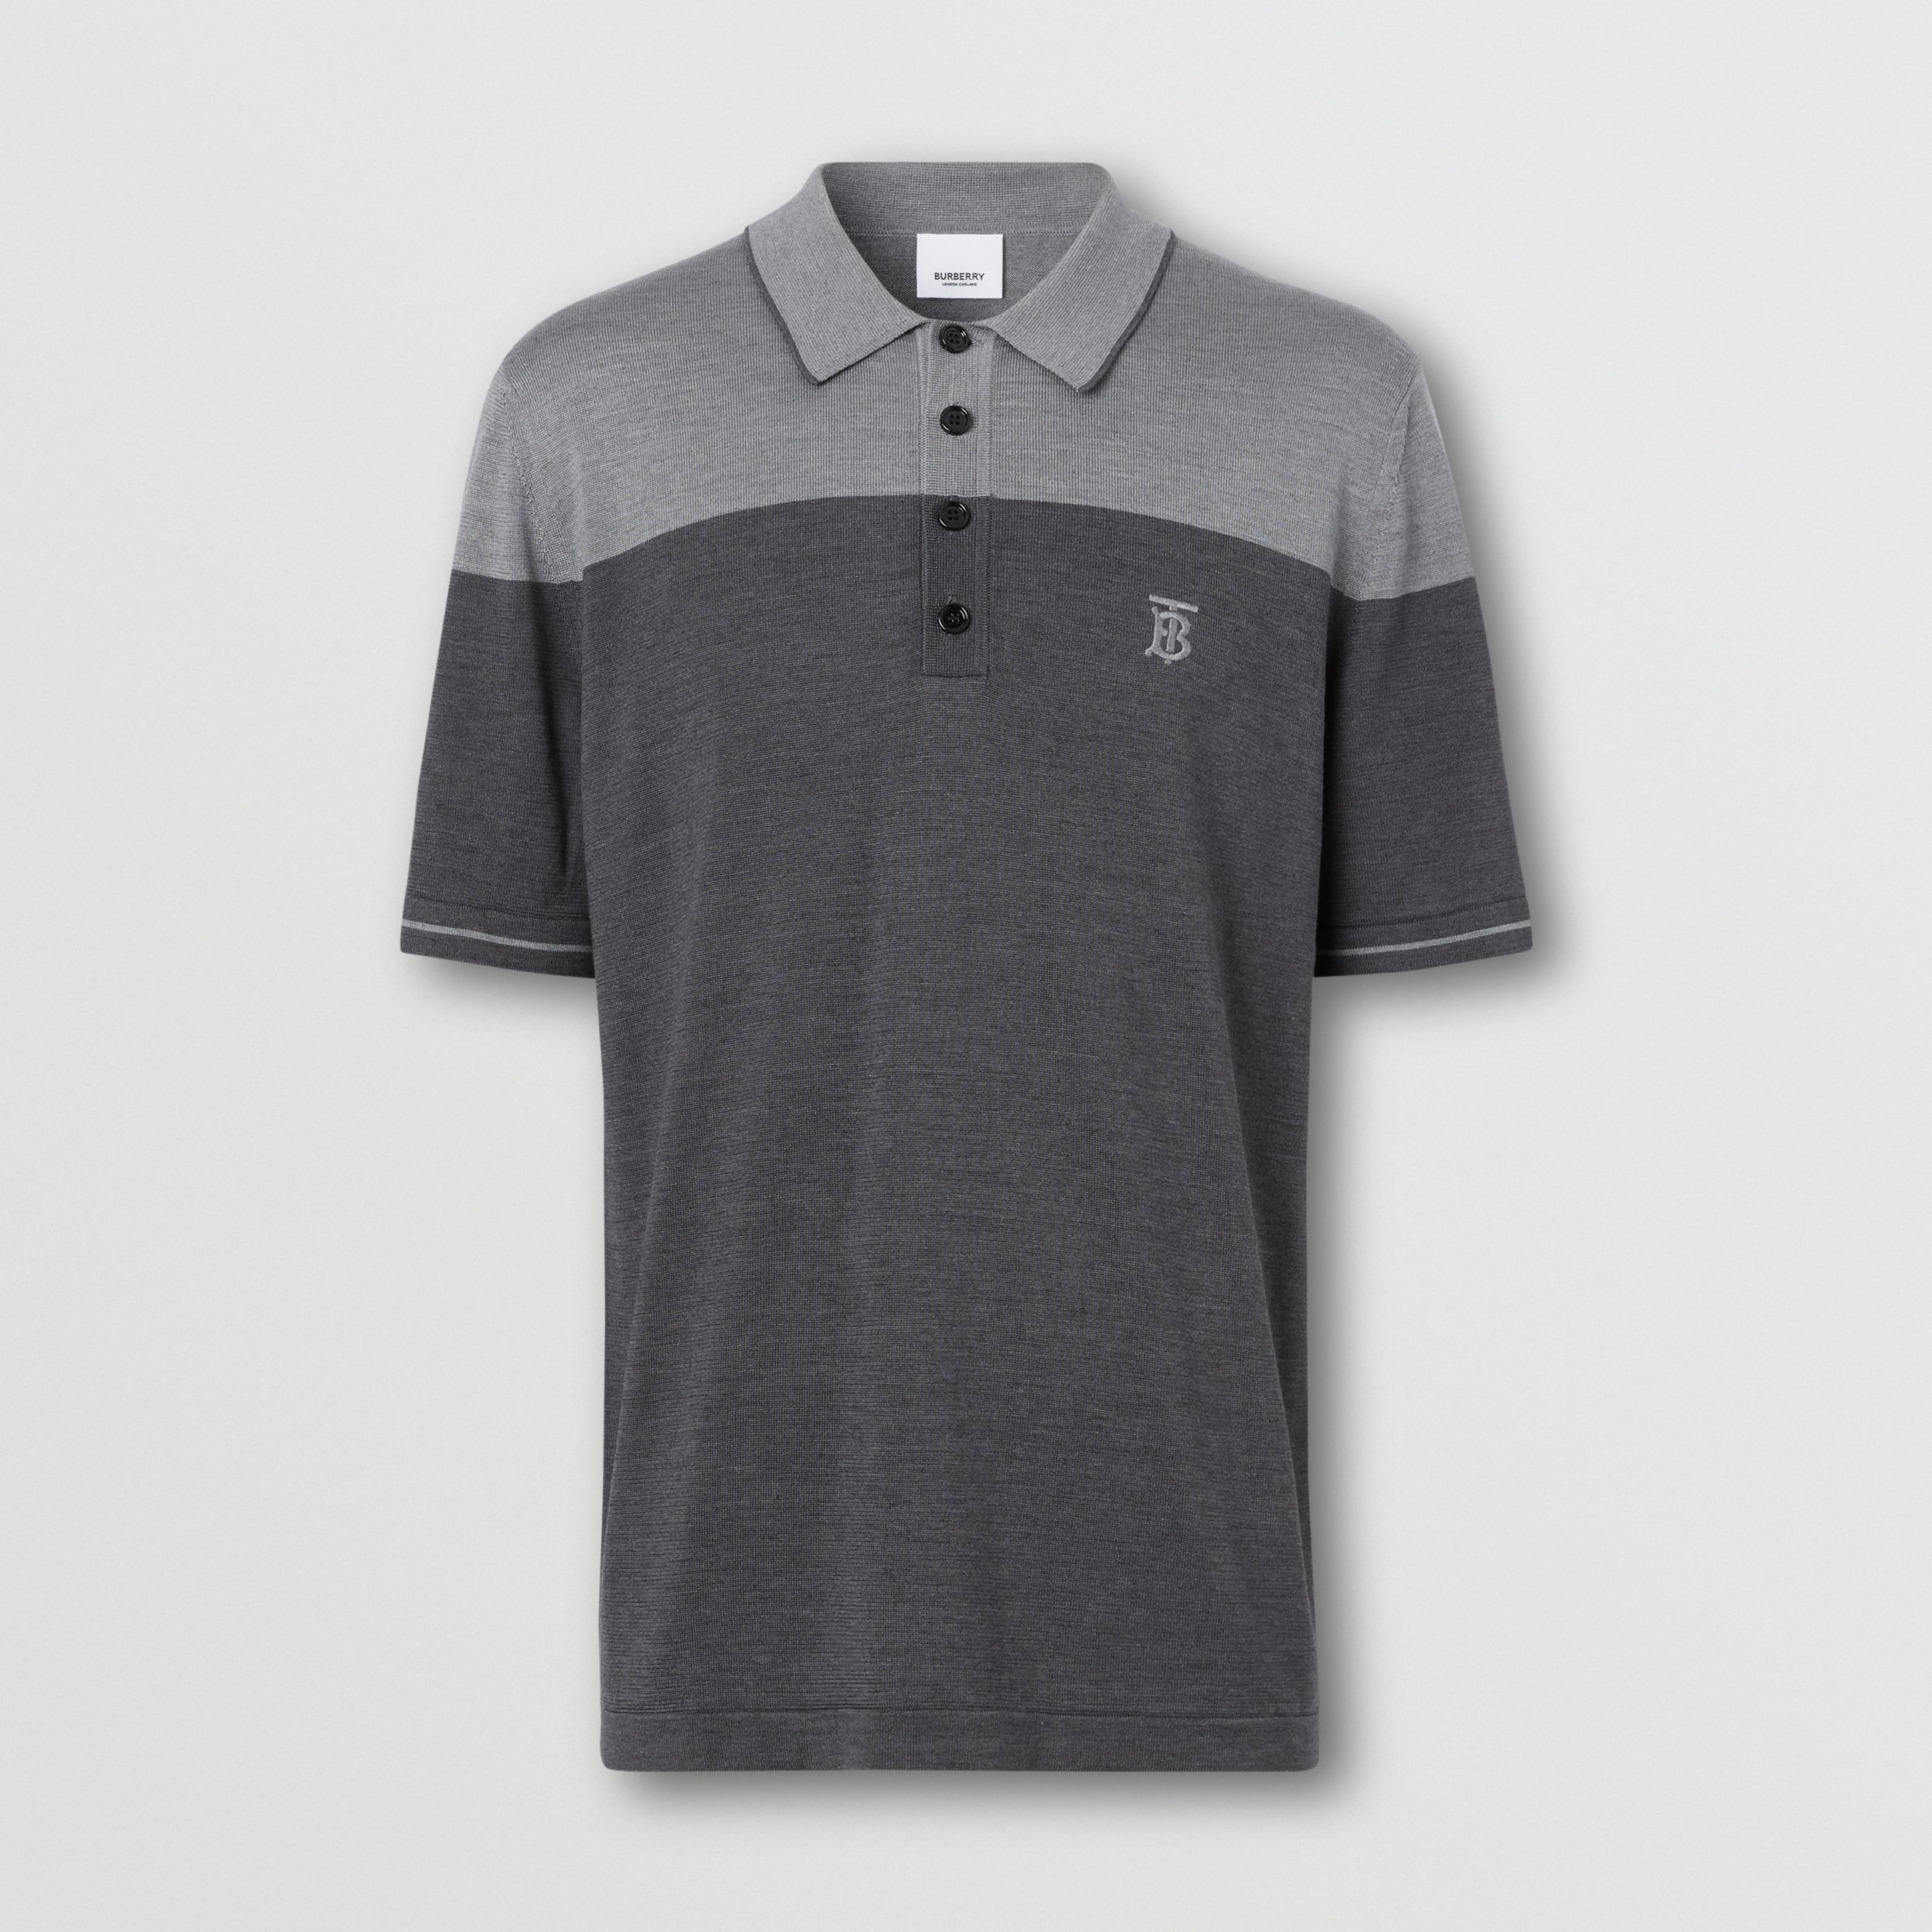 Monogram Motif Two-tone Silk Cashmere Polo Shirt in Charcoal - Men | Burberry - 4